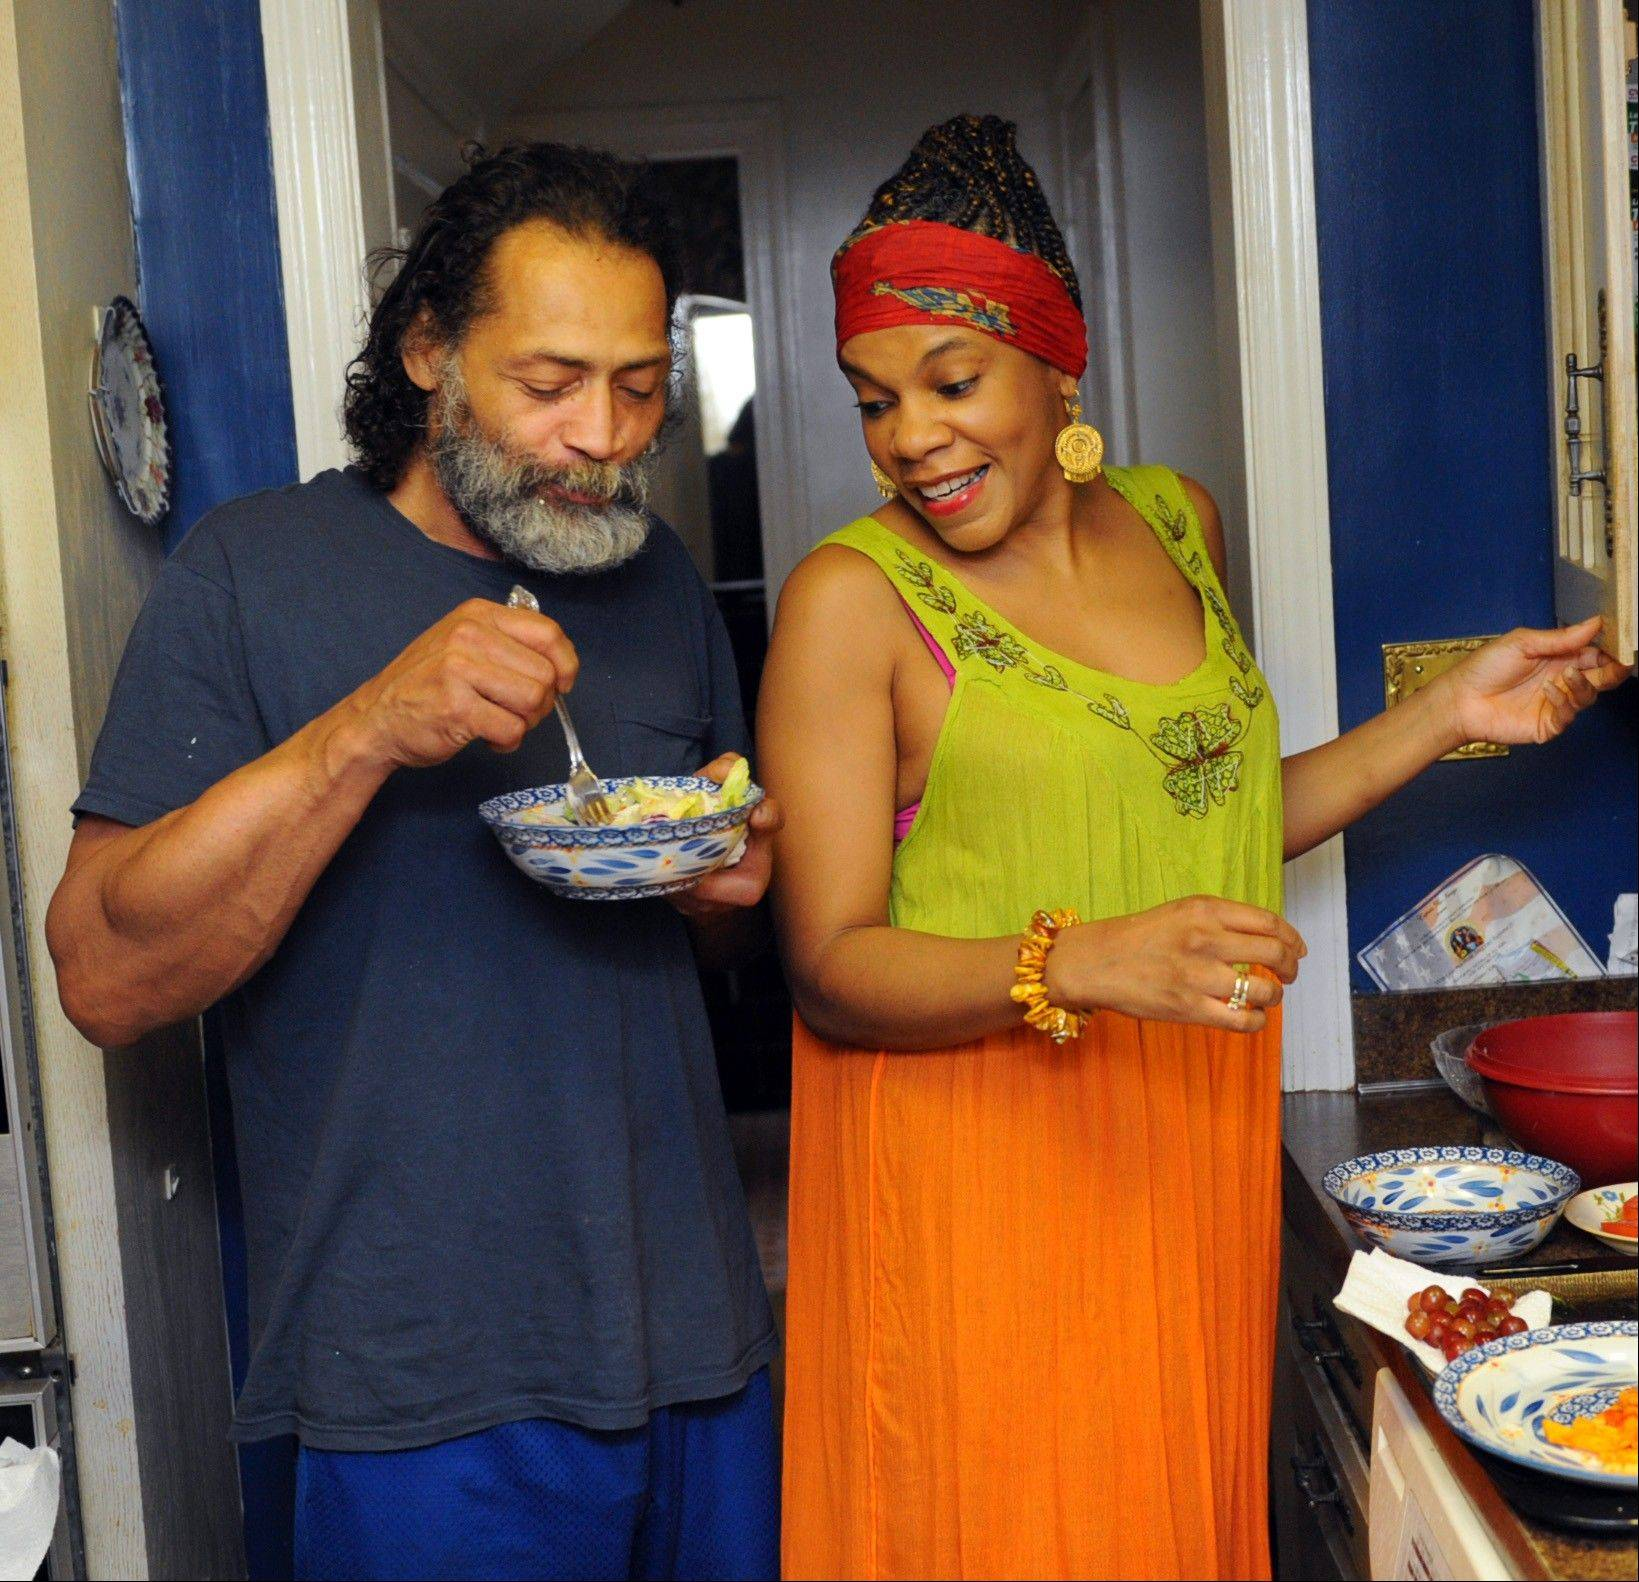 Obesity researchers are studying thin people for clues about hunger. Marlon Adams eats a salad while his fiancee, Maureen Michael, prepares dinner for her mother.